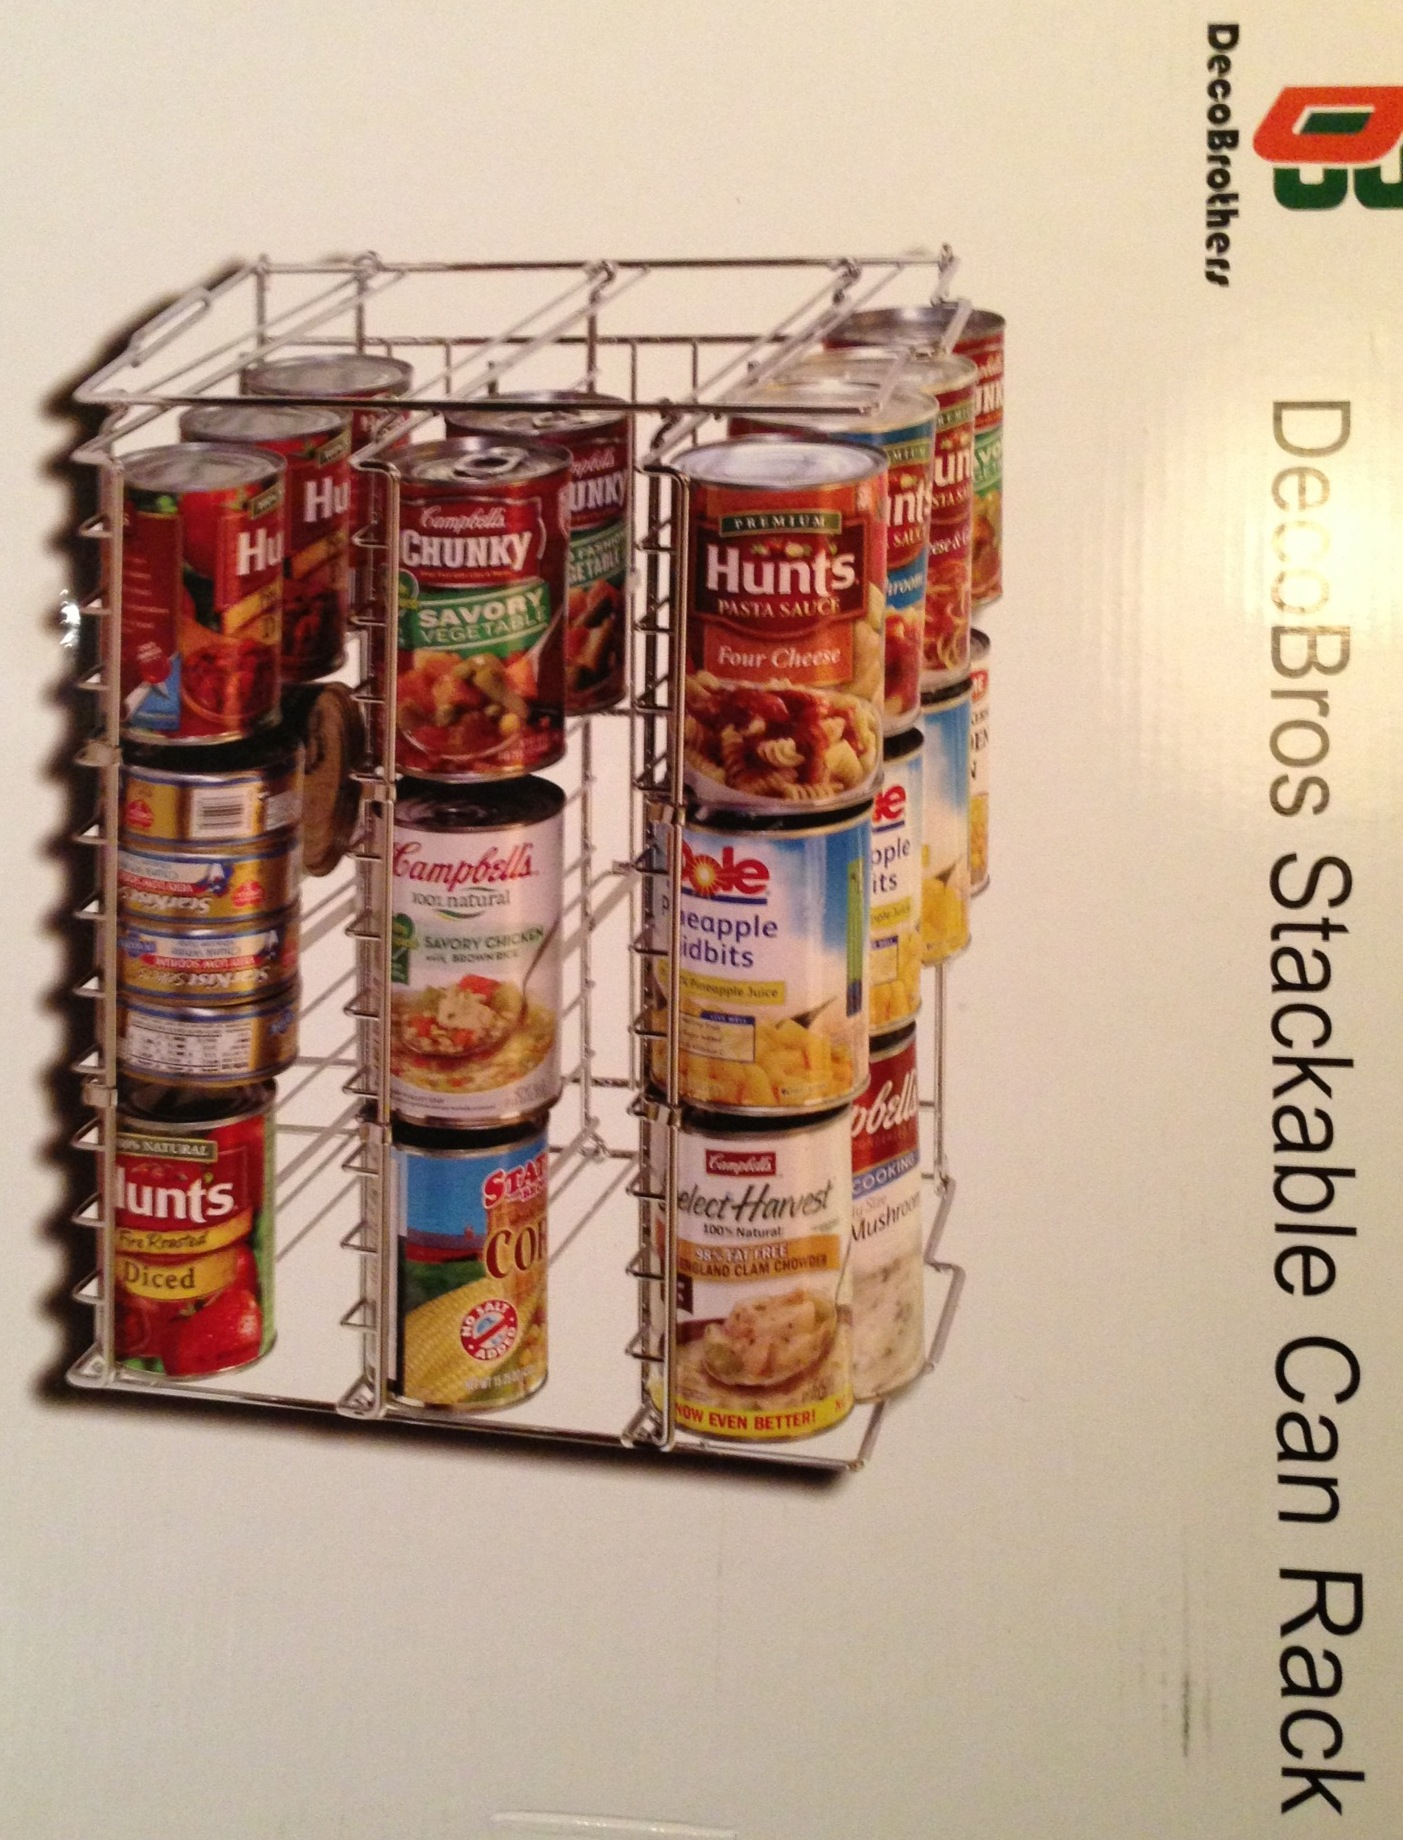 Christmas 2013: the passion of the pantry organizer (and other gifts)